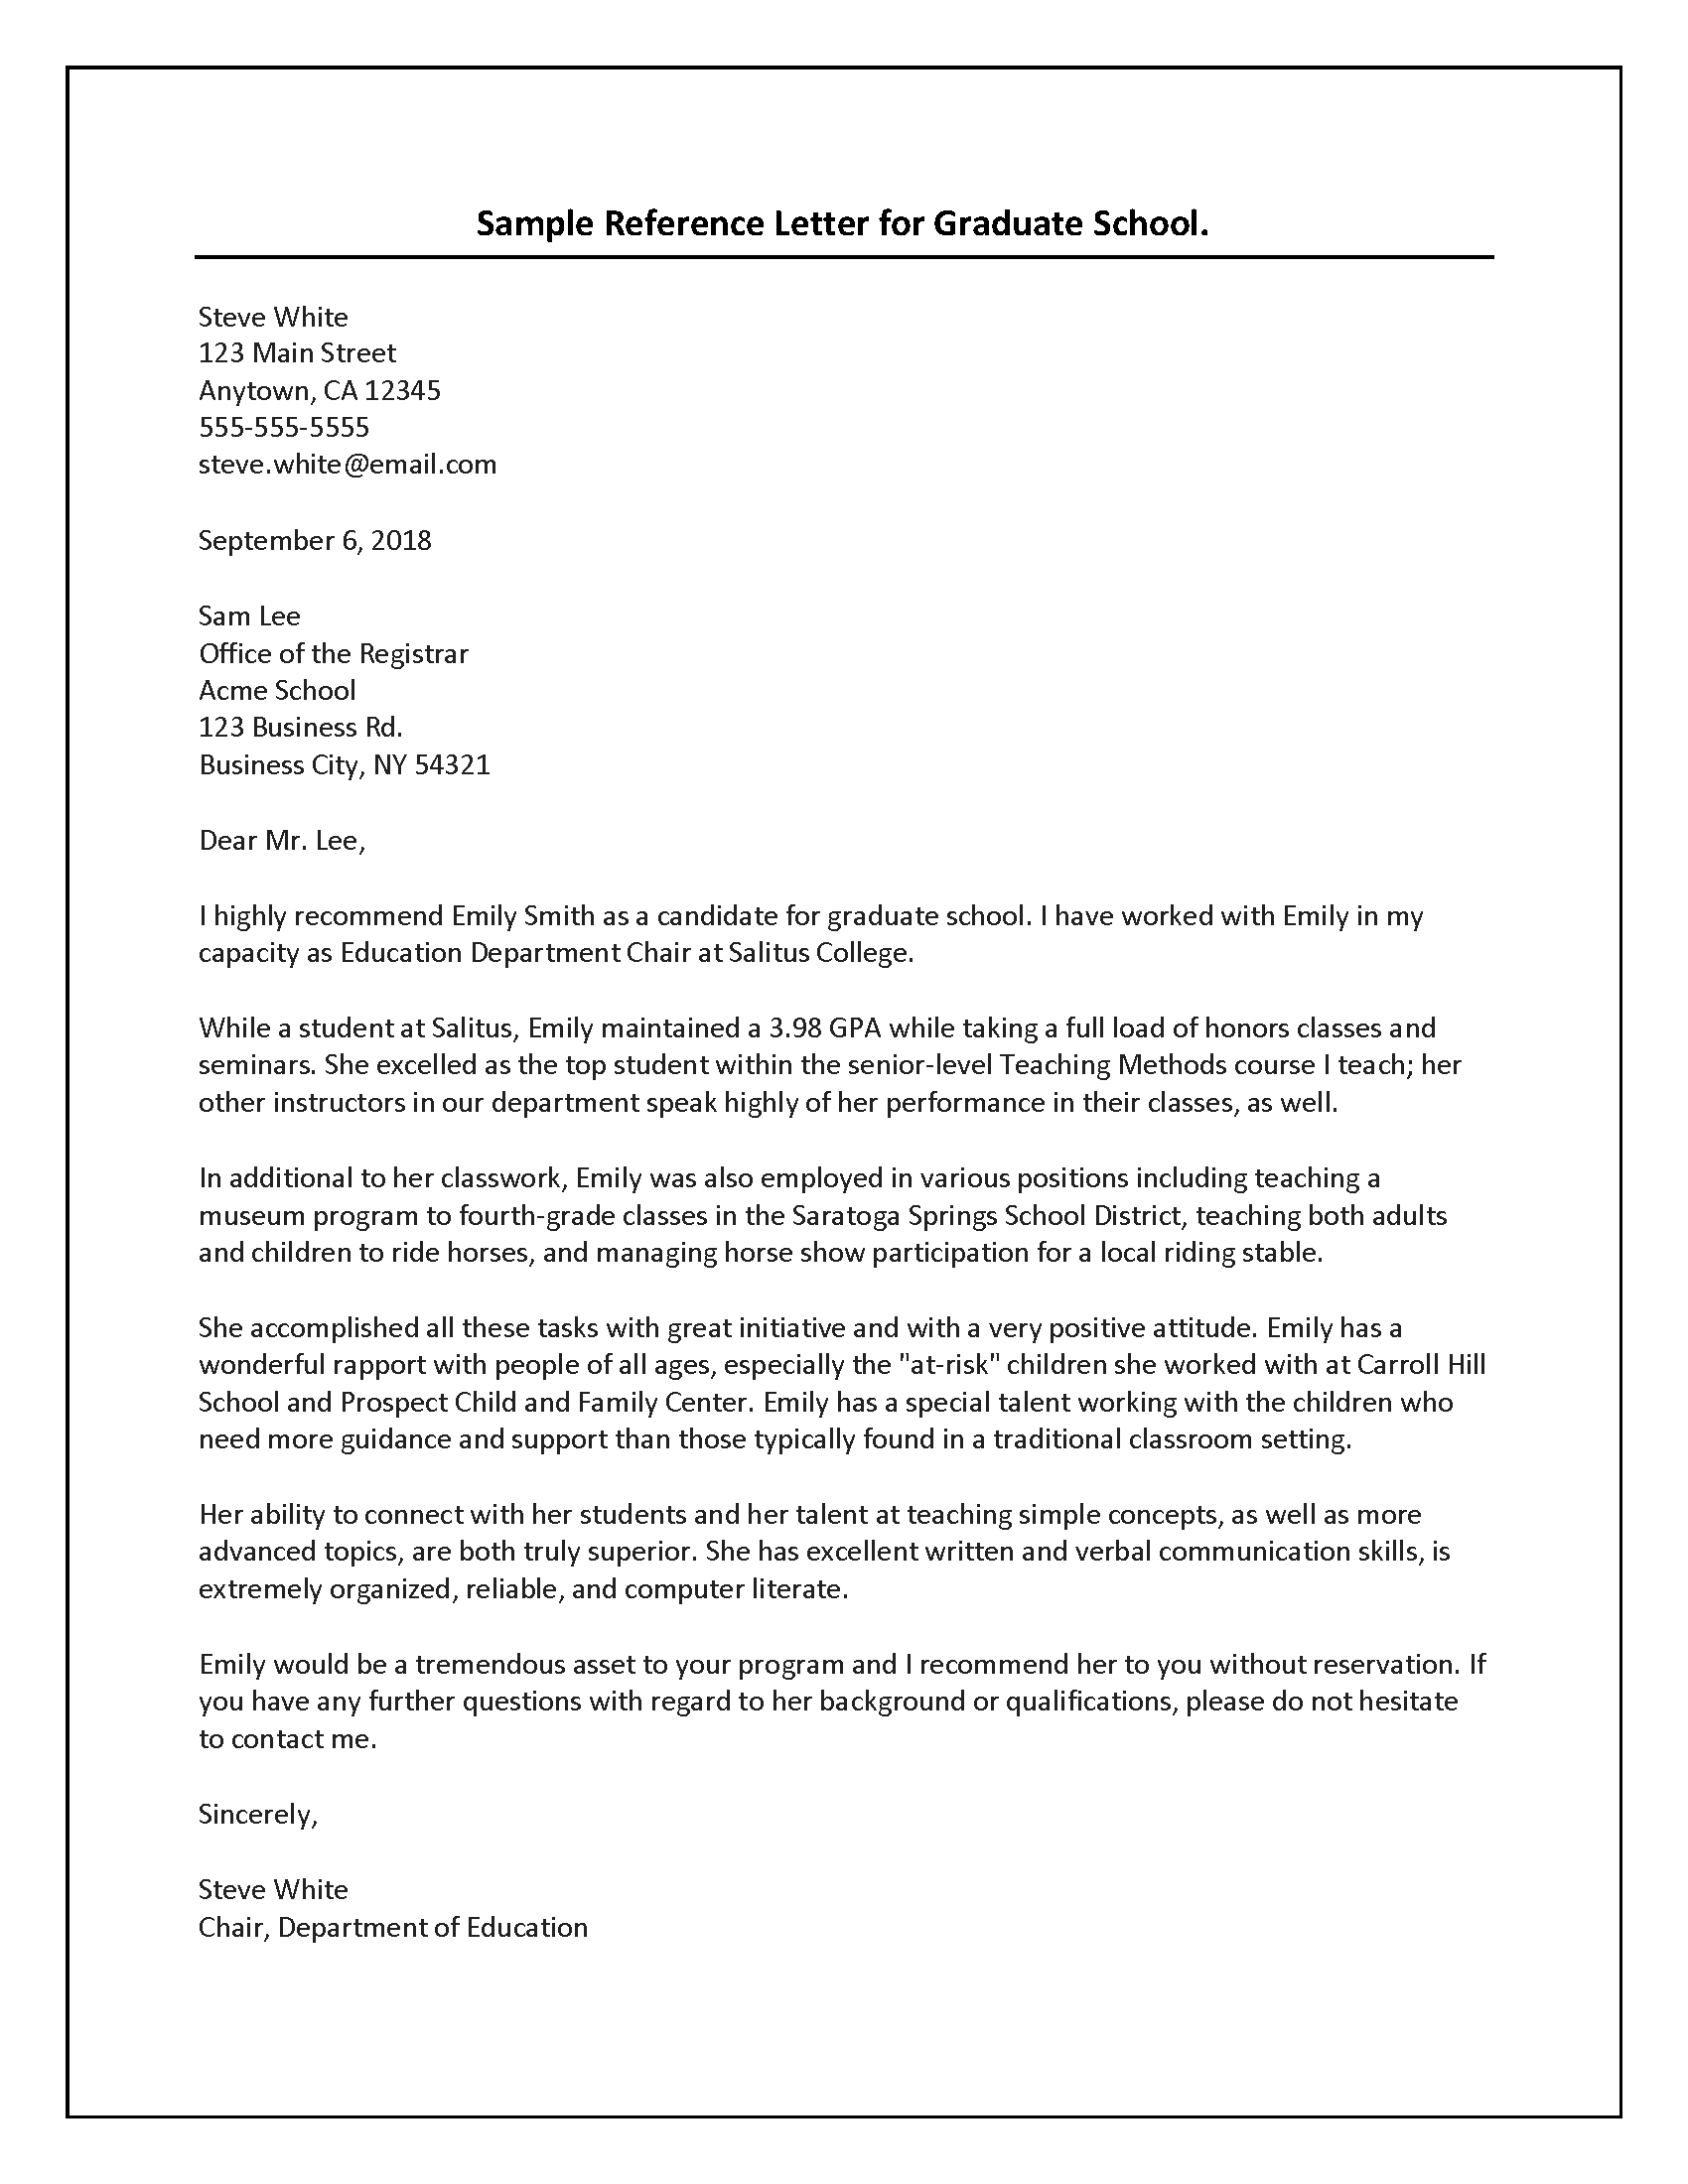 Student Letter Of Recommendation Template from scholarshipfellow.com